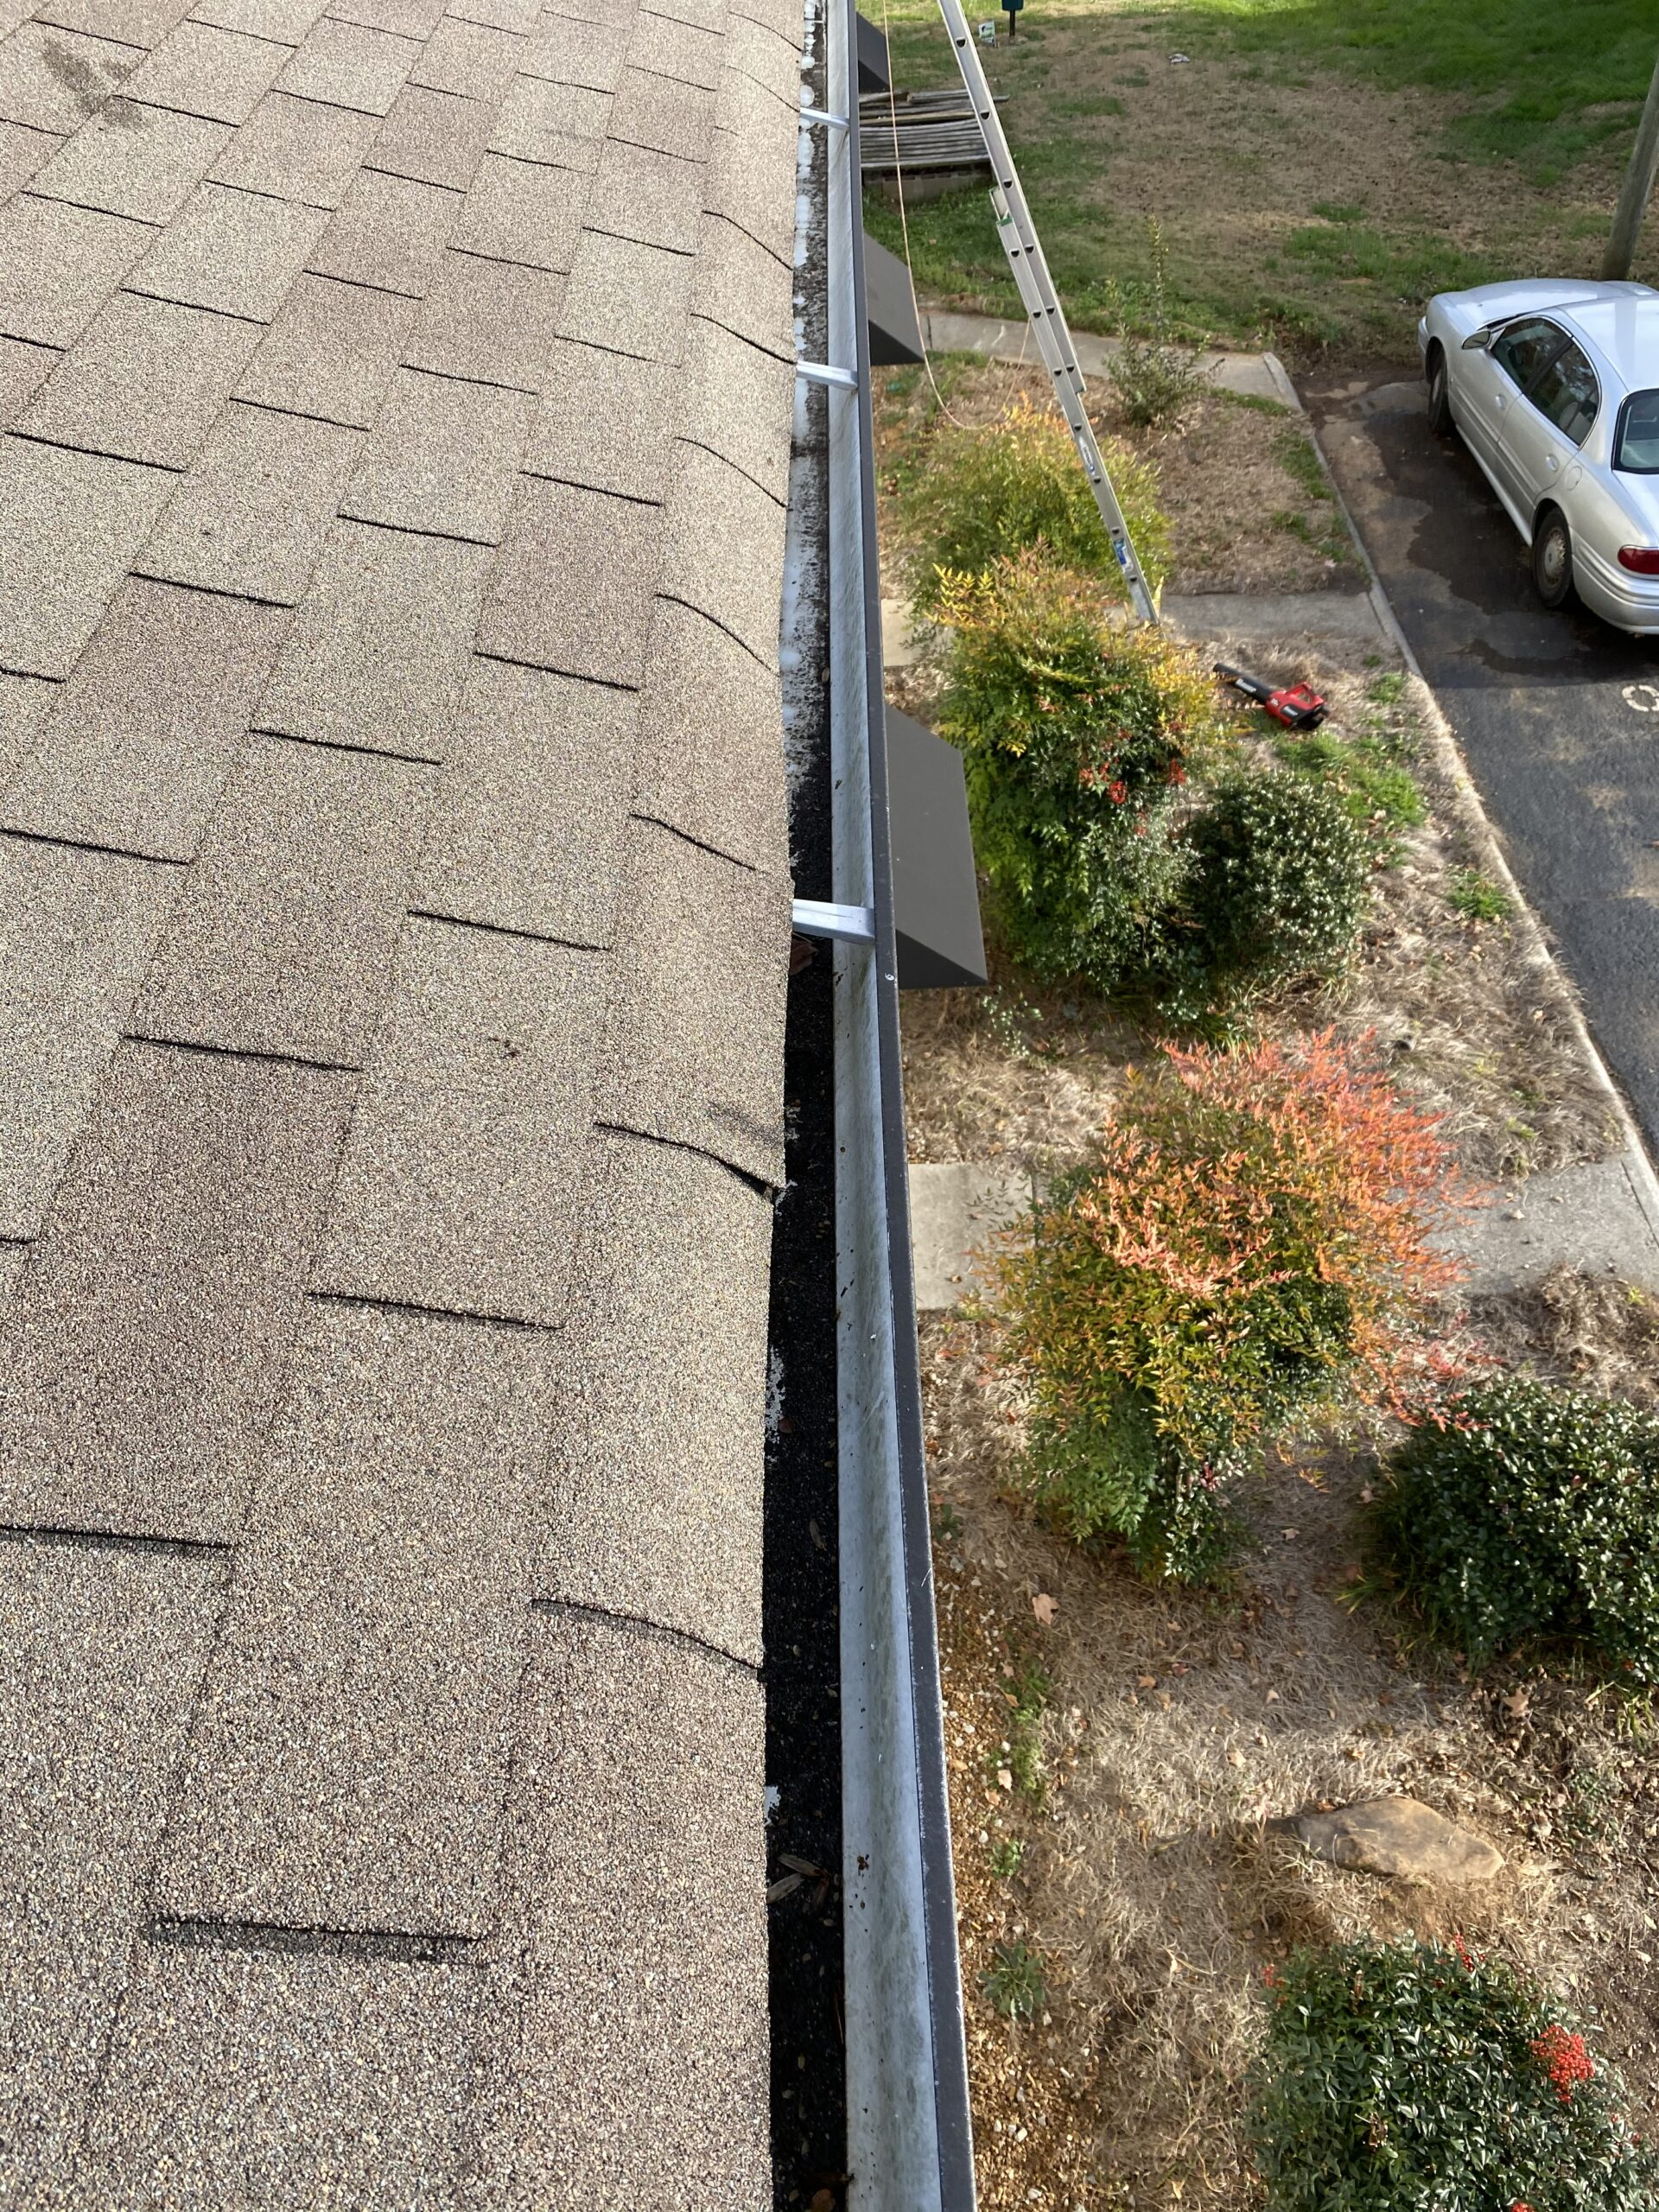 This is a picture of gutters that were cleaned out